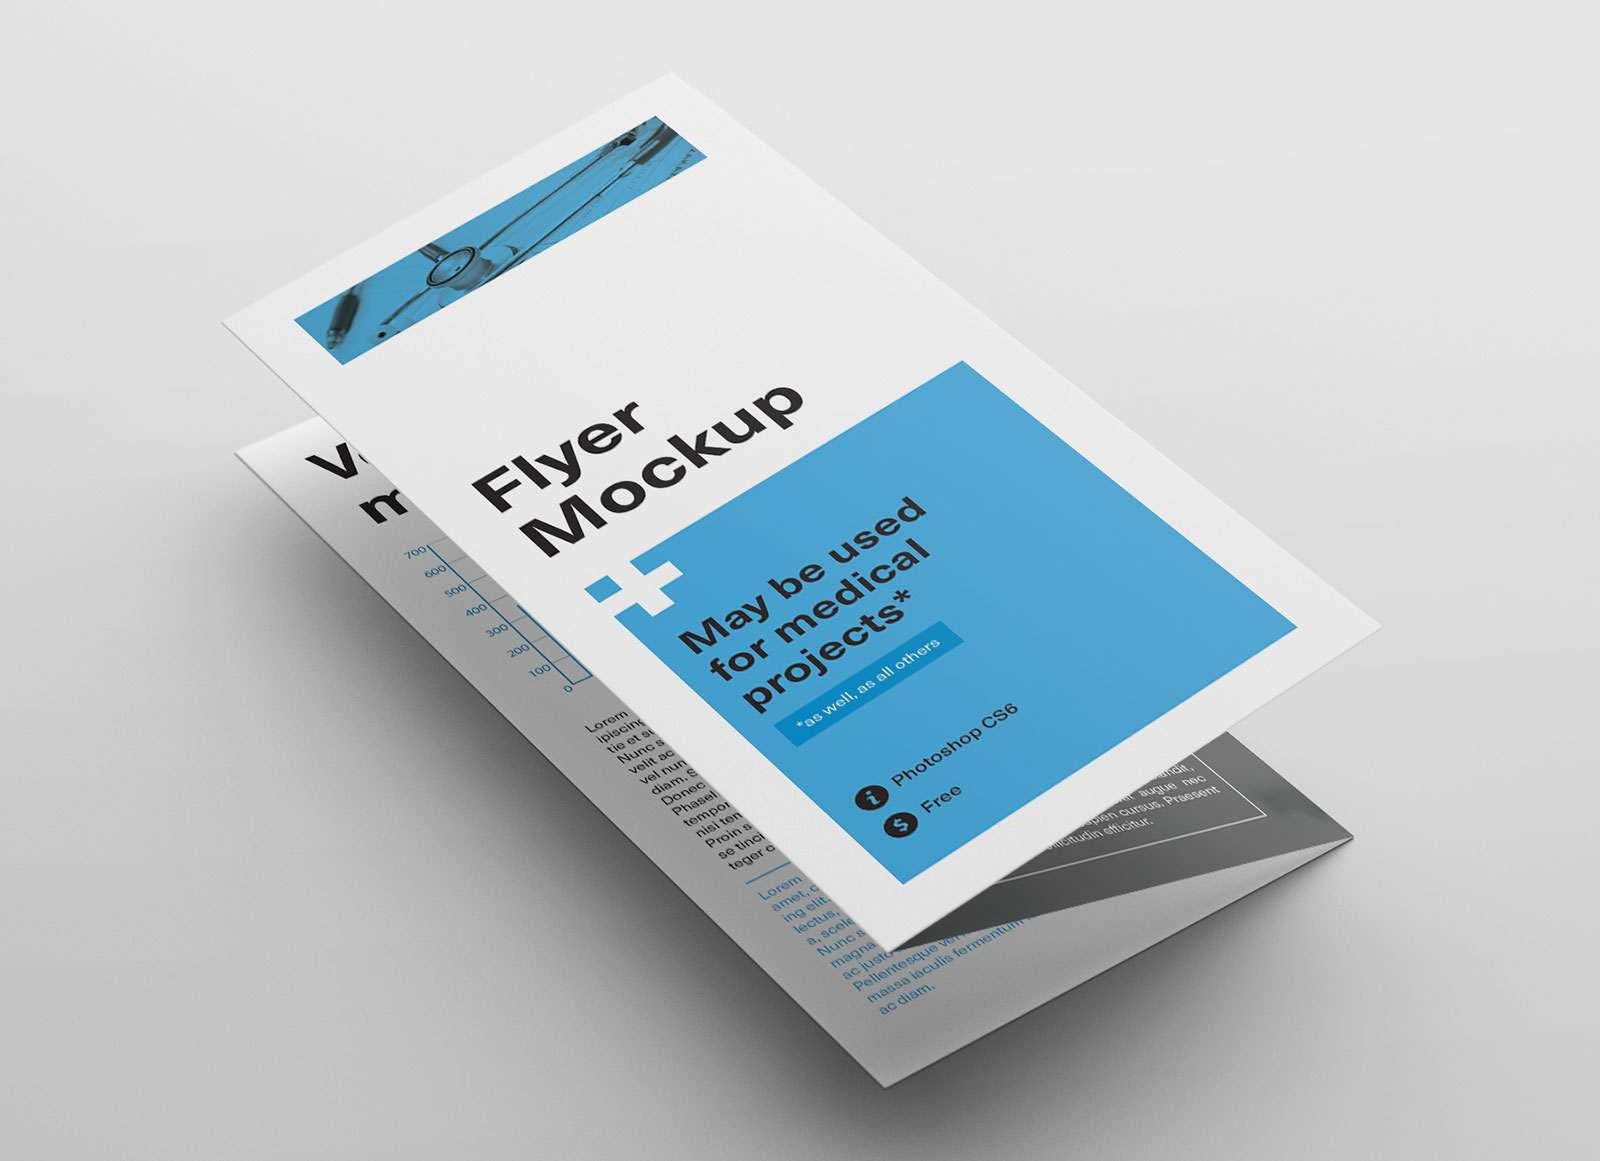 brochure mockup is professionally designed and all three pages are placed deliberately on the top of the layer panel so you do not need to find in grouped